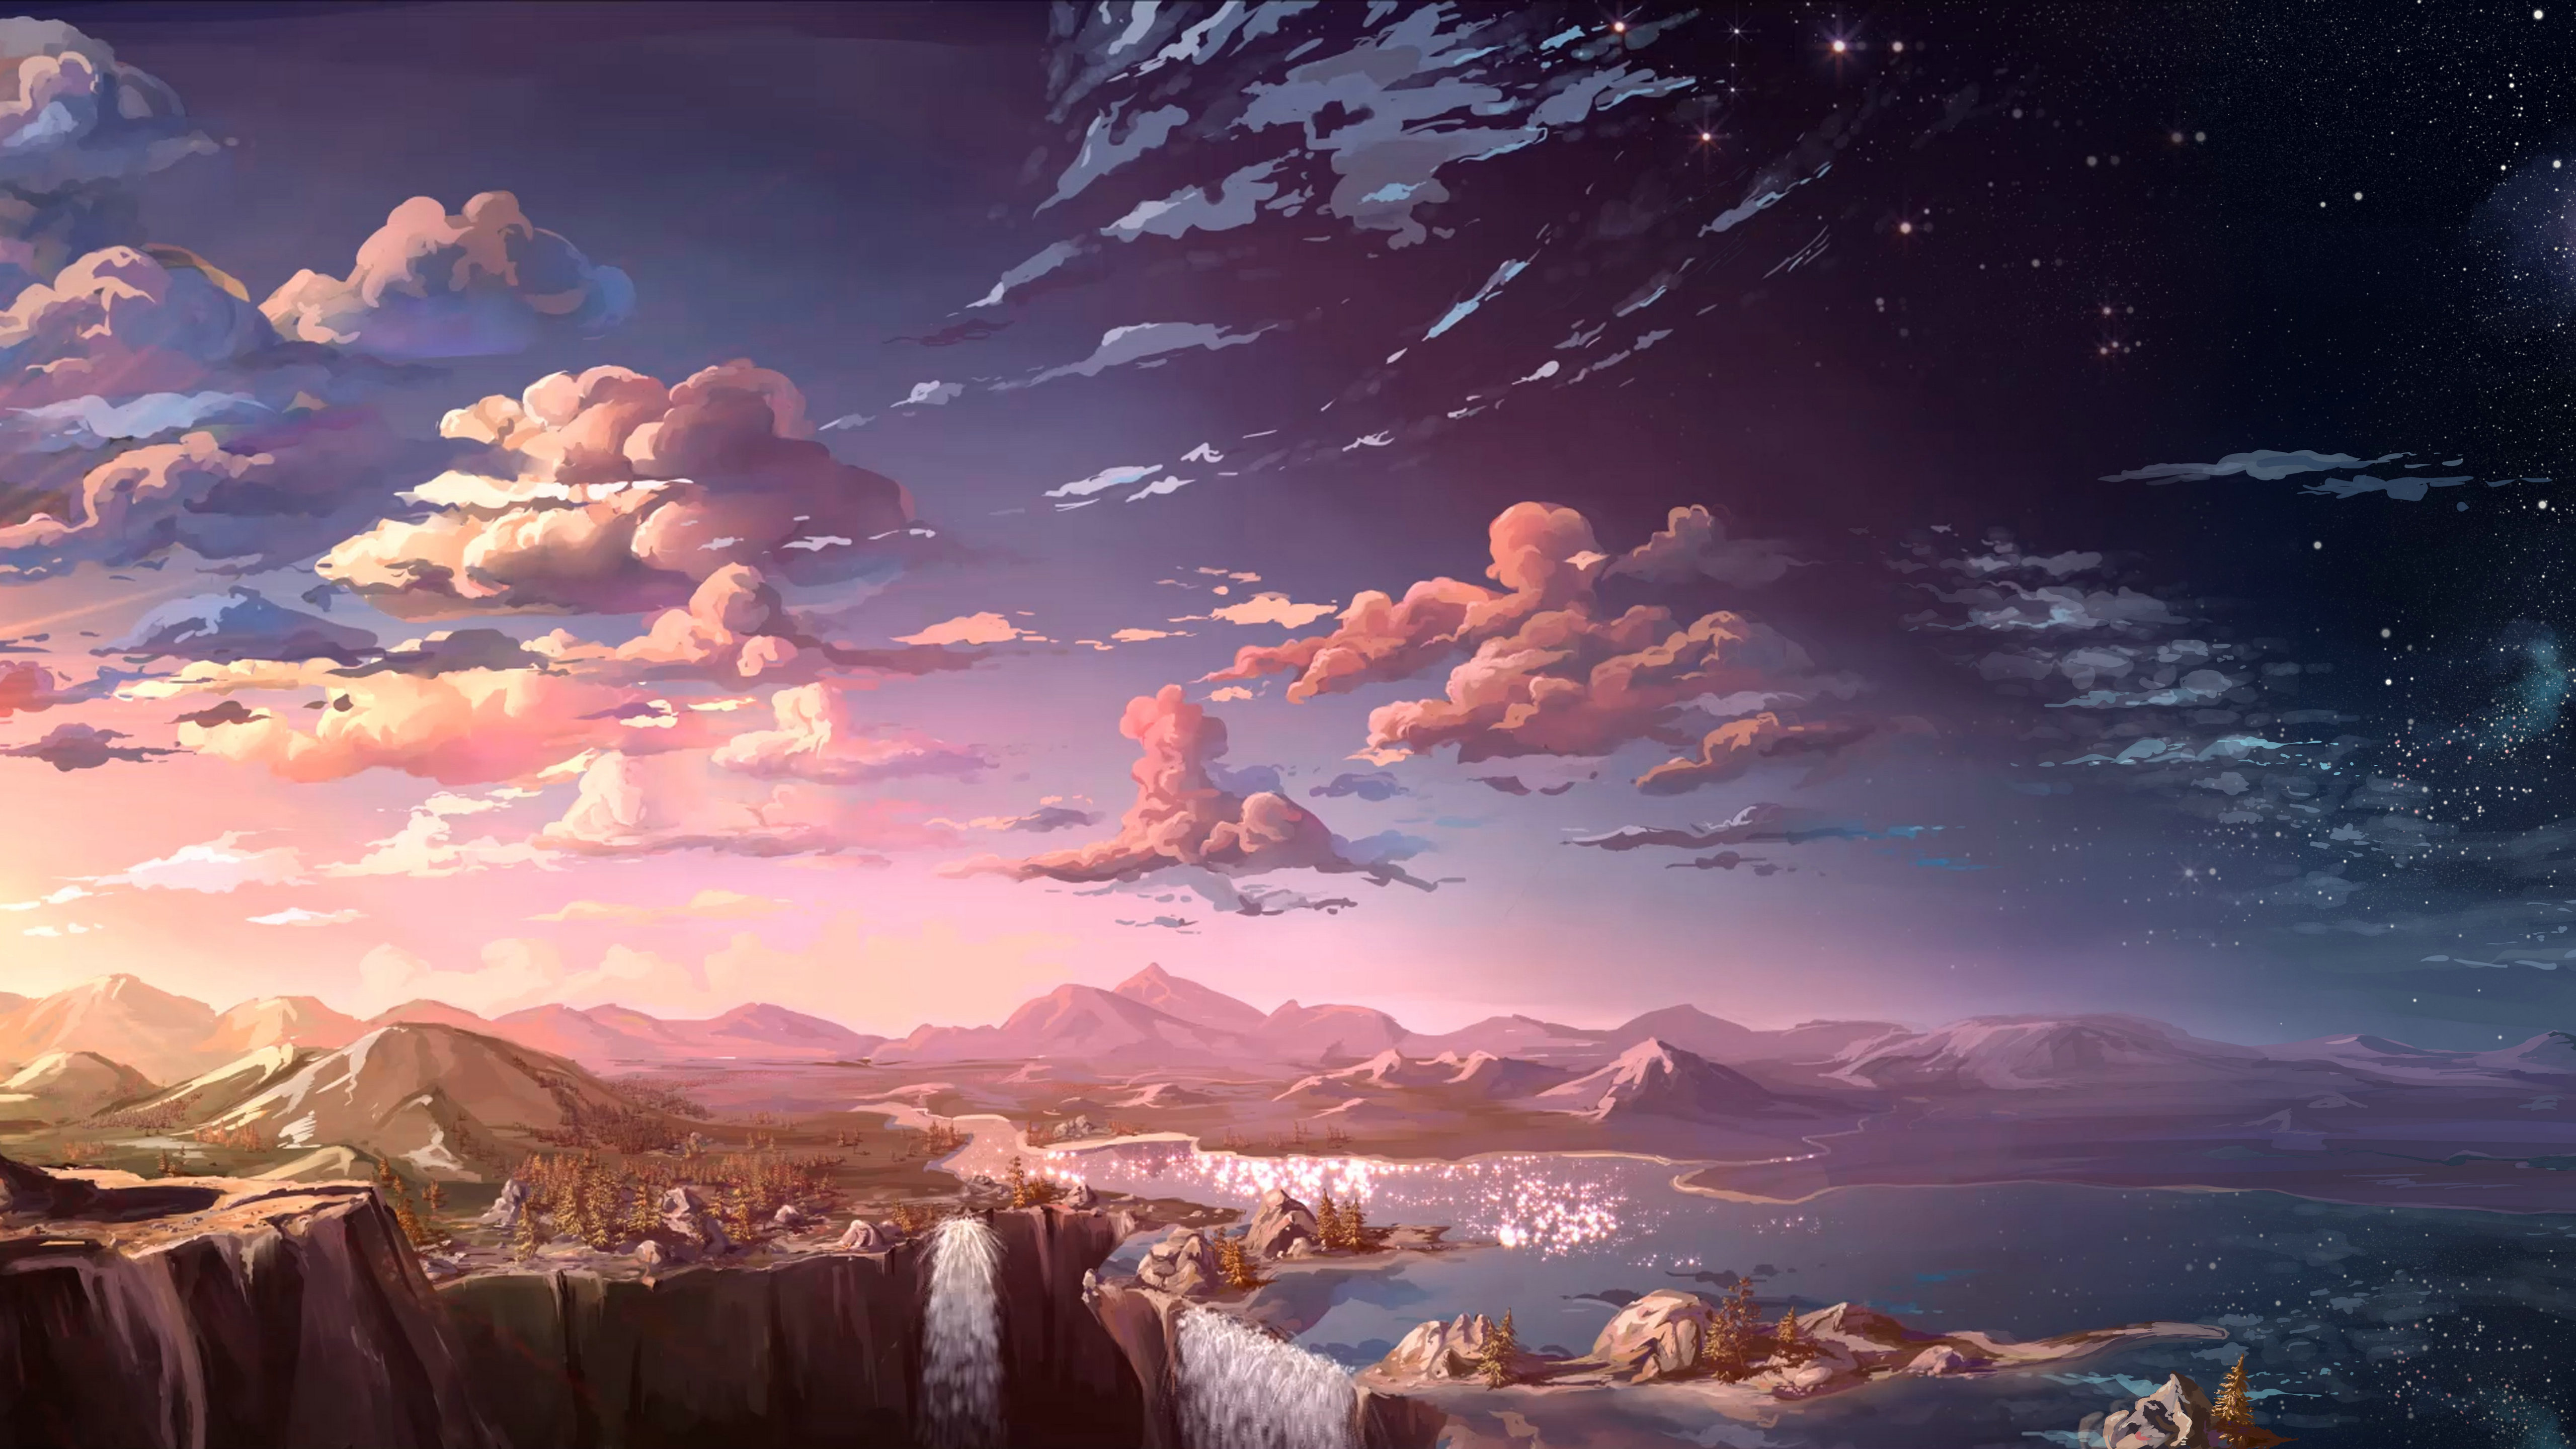 2048x1152 anime landscape waterfall cloud 5k 2048x1152 - 5k anime wallpaper ...